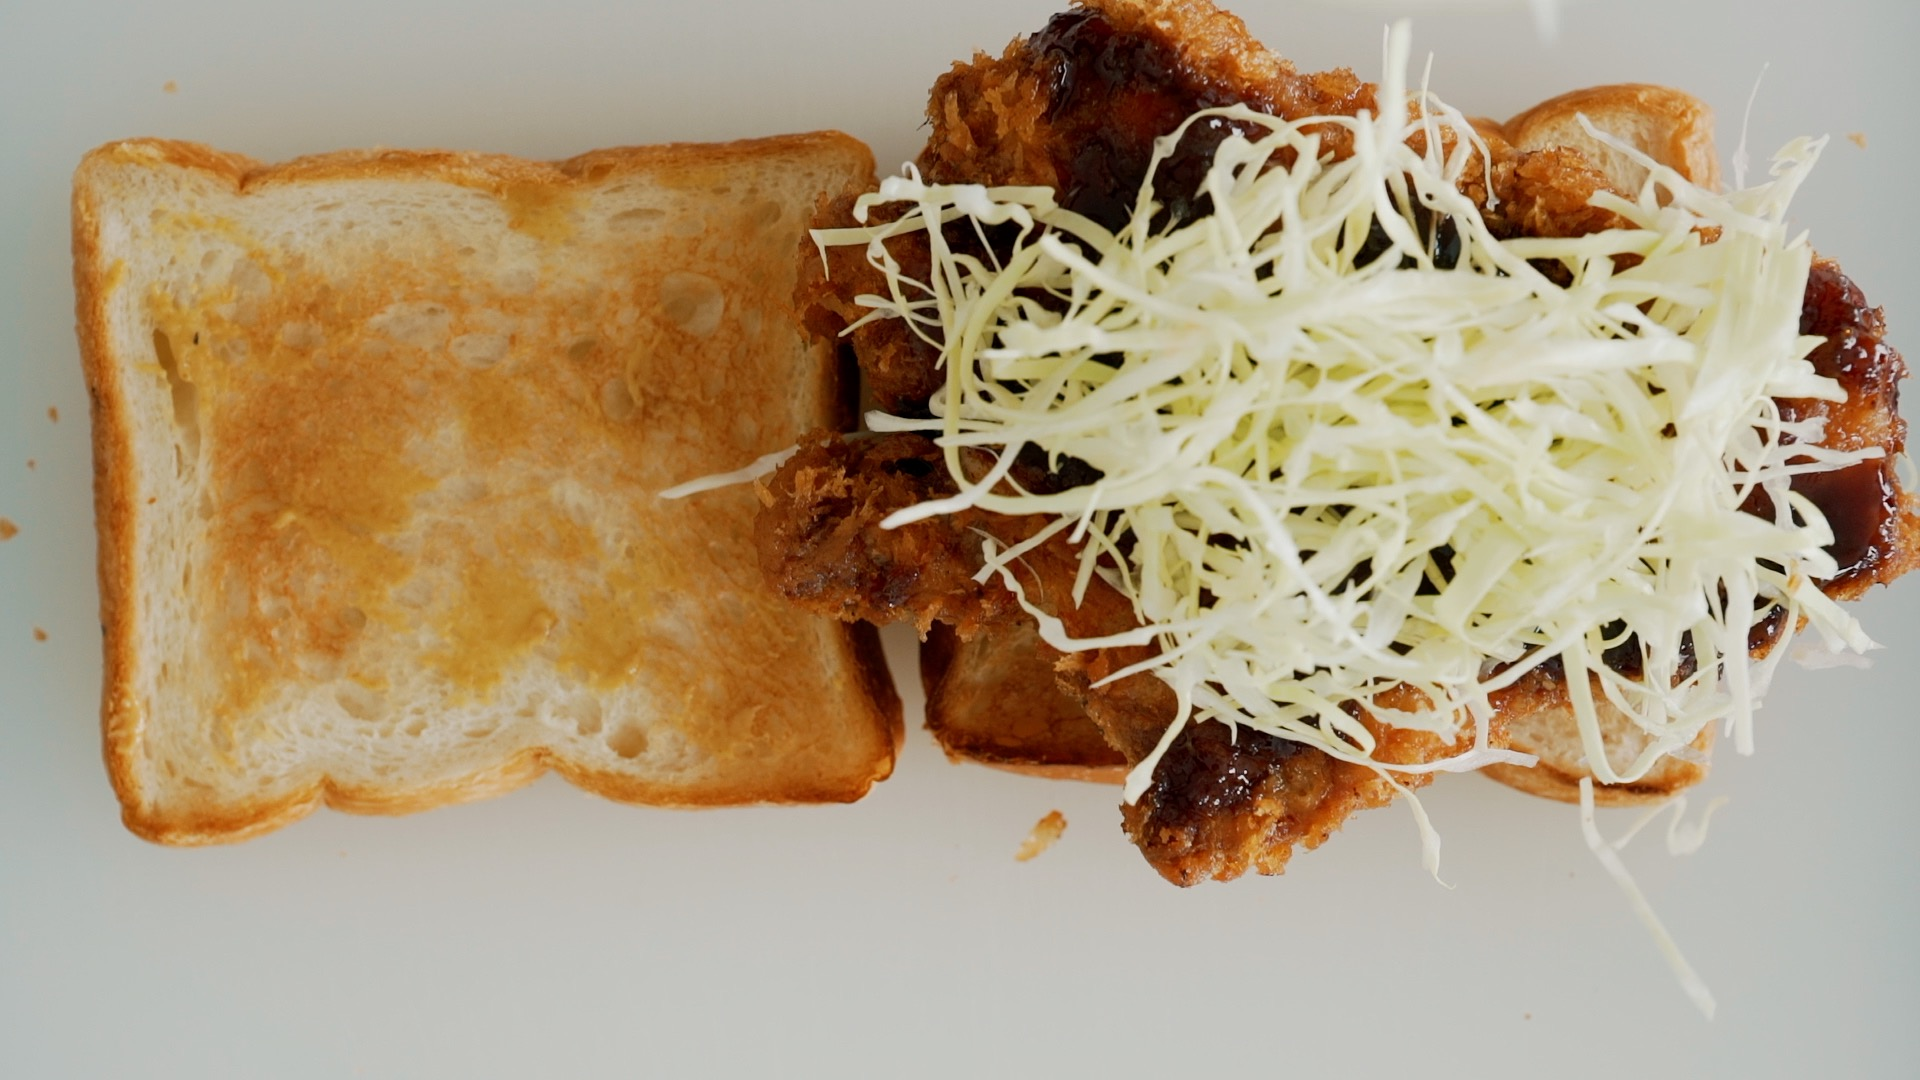 Topping the Katsu Sando with cabbage.